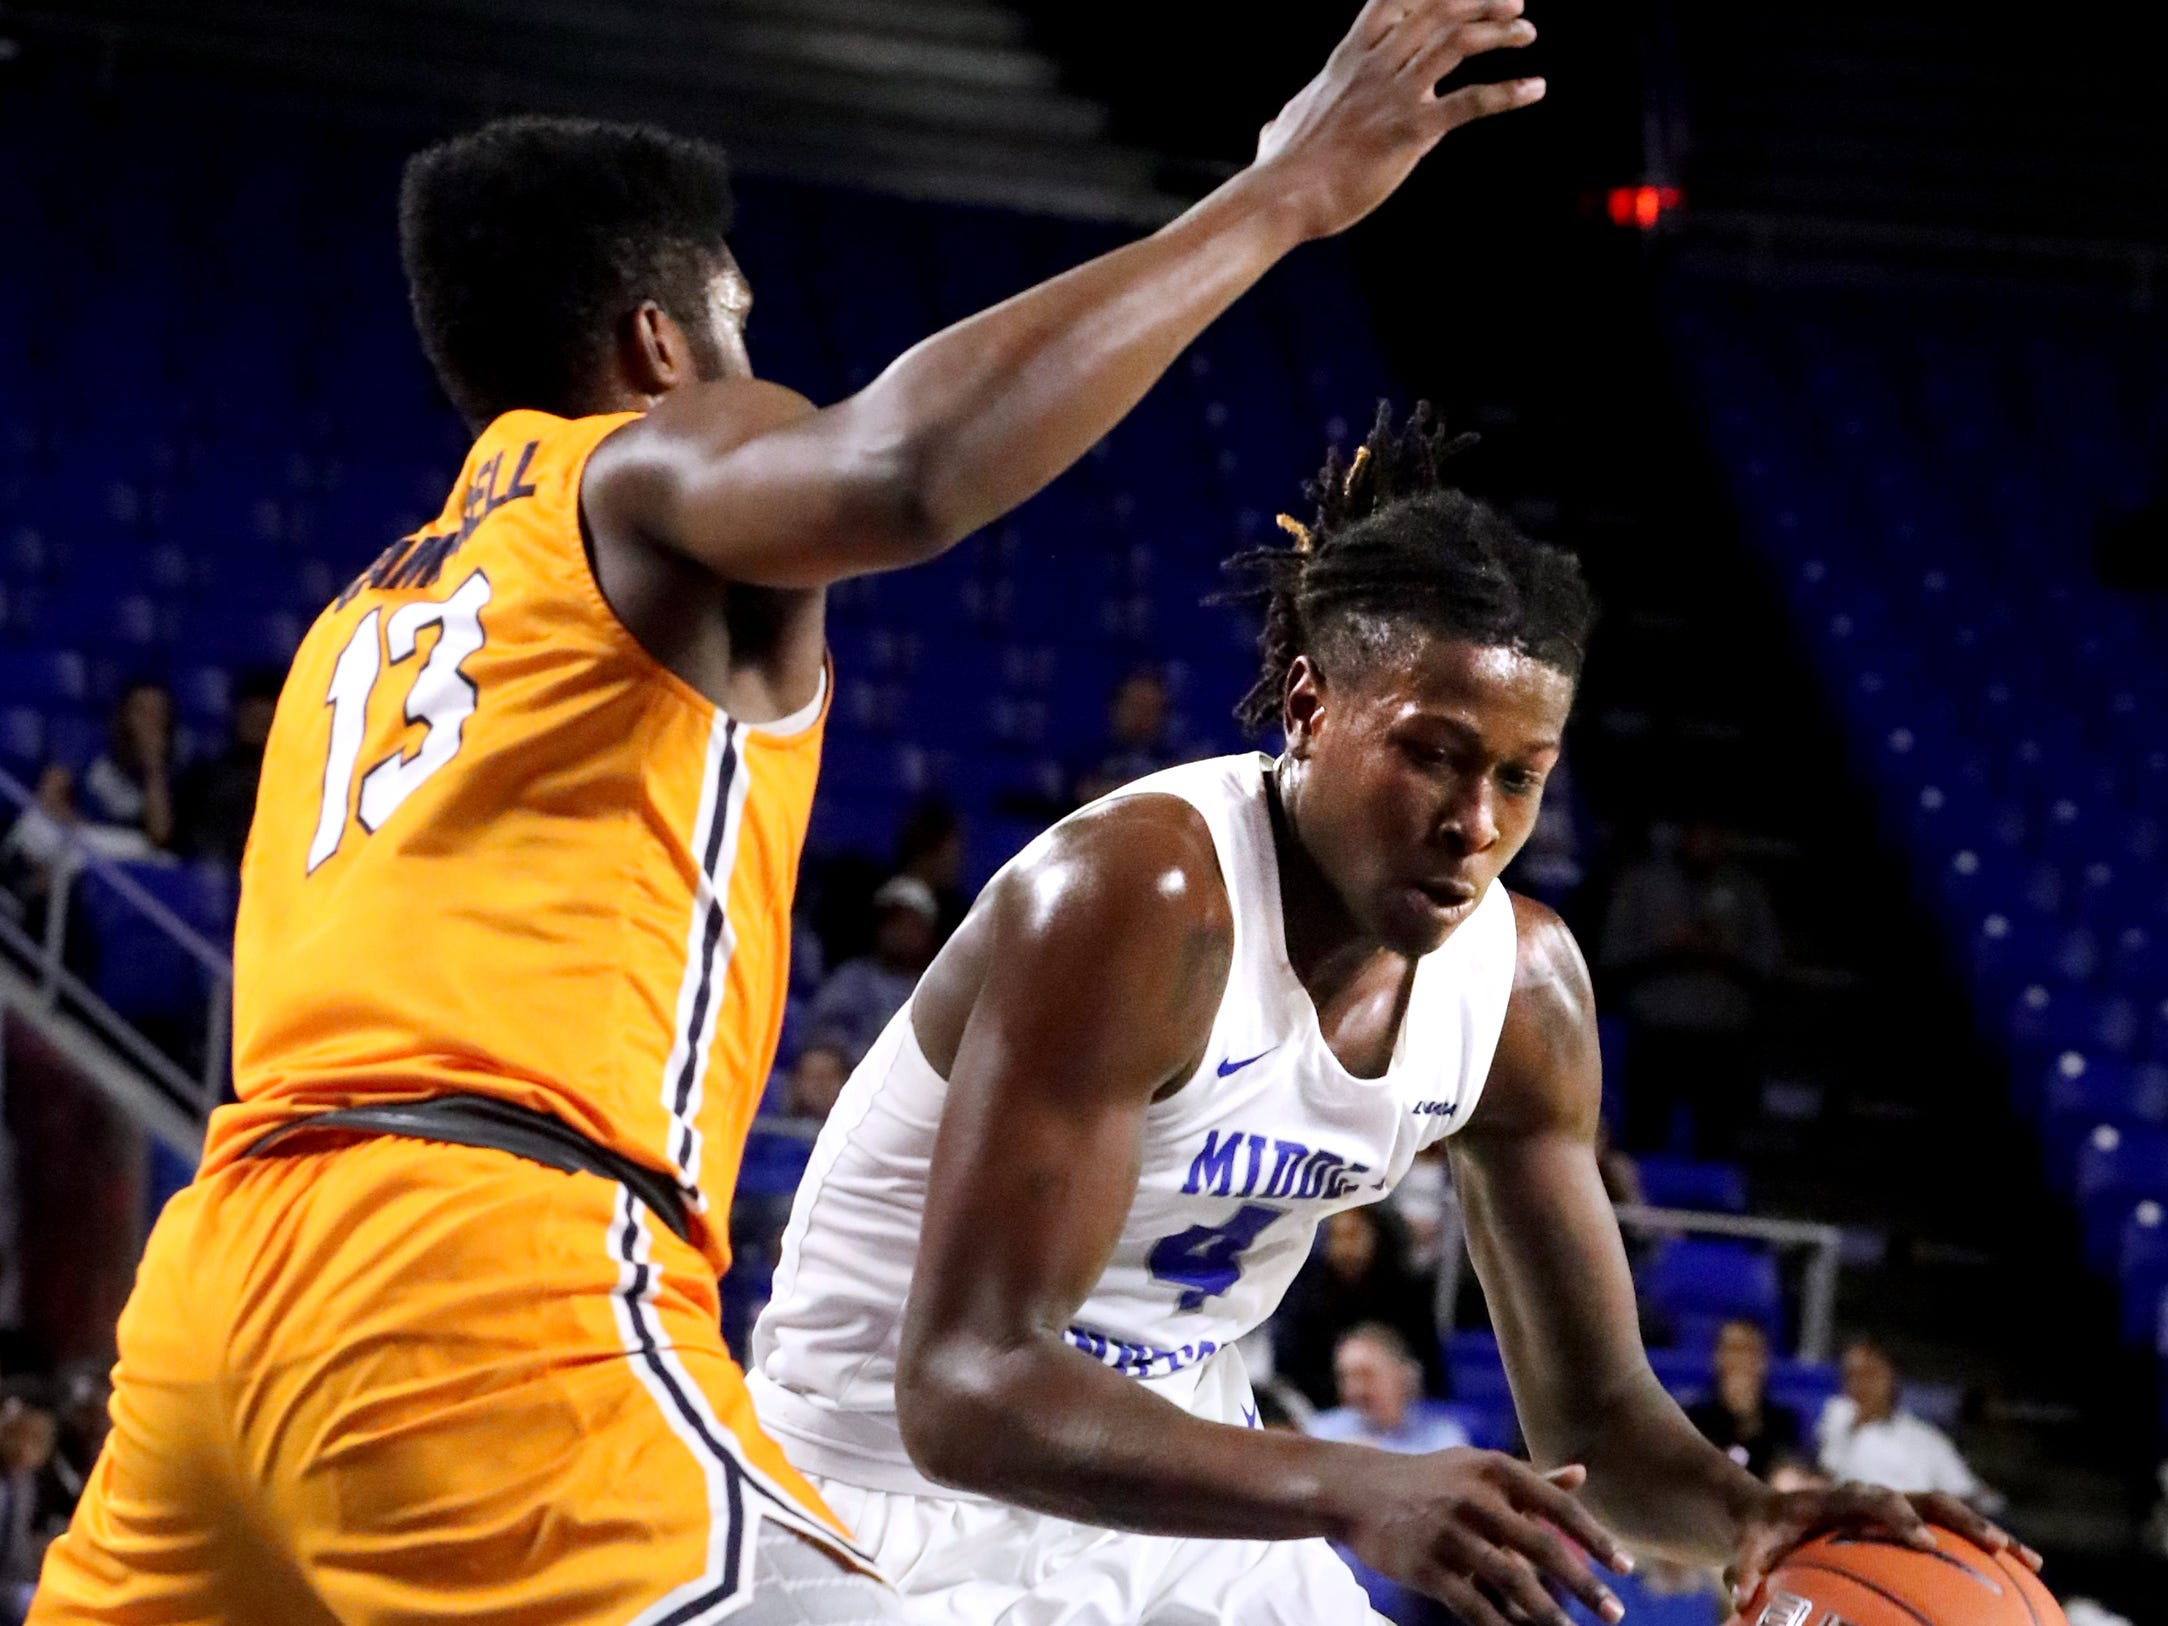 MTSU forward James Hawthorne (4) drives to the basket as UTEP guard Ountae Campbell (13) guards him on Saturday, March 9, 2019, at Murphy Center in Murfreesboro, Tenn.